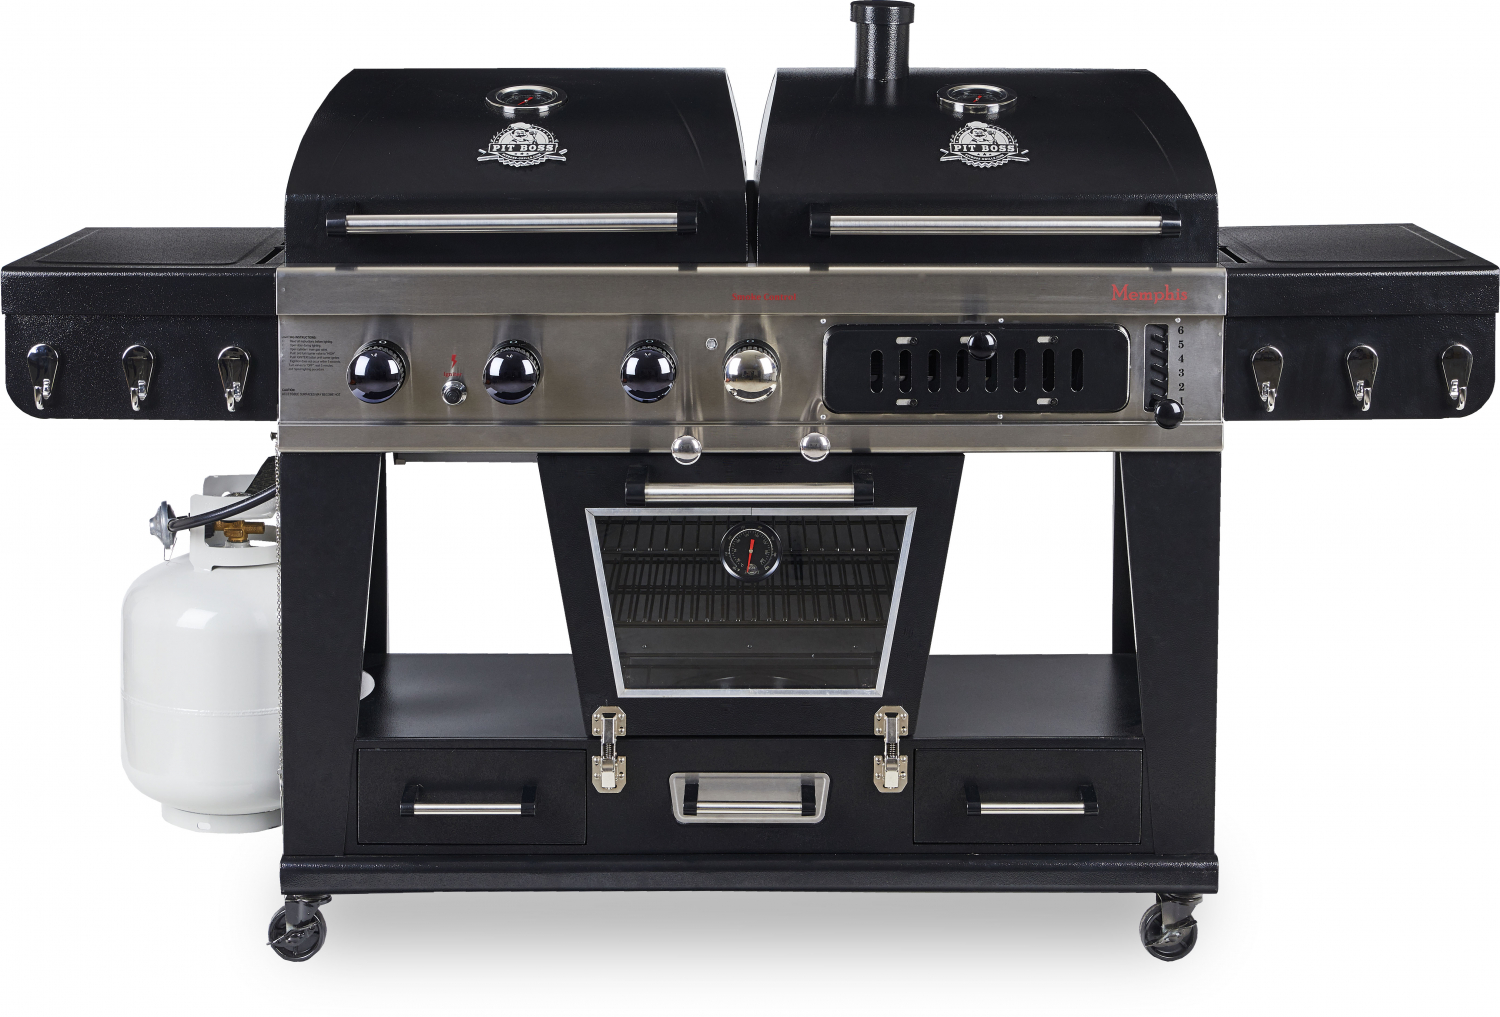 Details About Pit Boss Memphis Ultimate Gas Charcoal Combo Grill W Smoker 4 In 1 Bbq Meat Fish